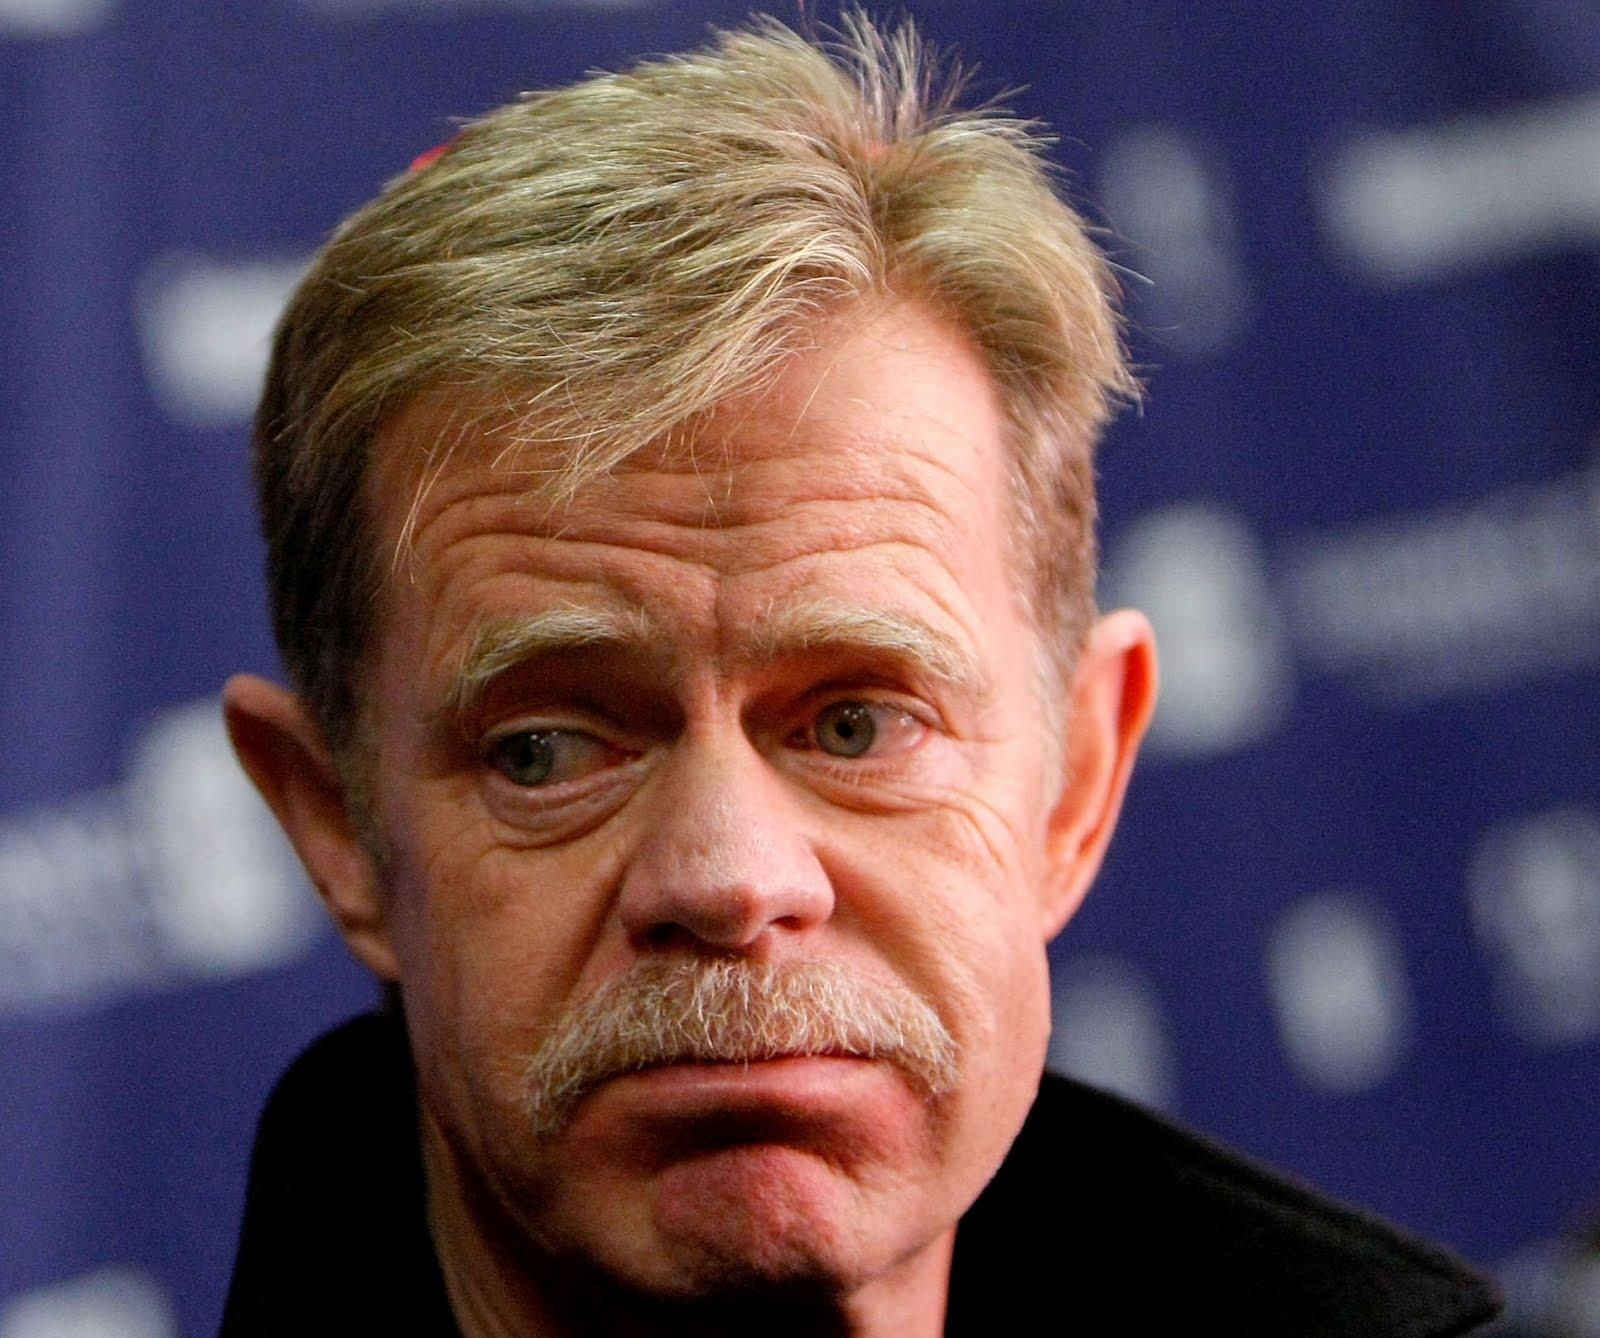 Love U Wallpapers: william h. macy wallpapers hd